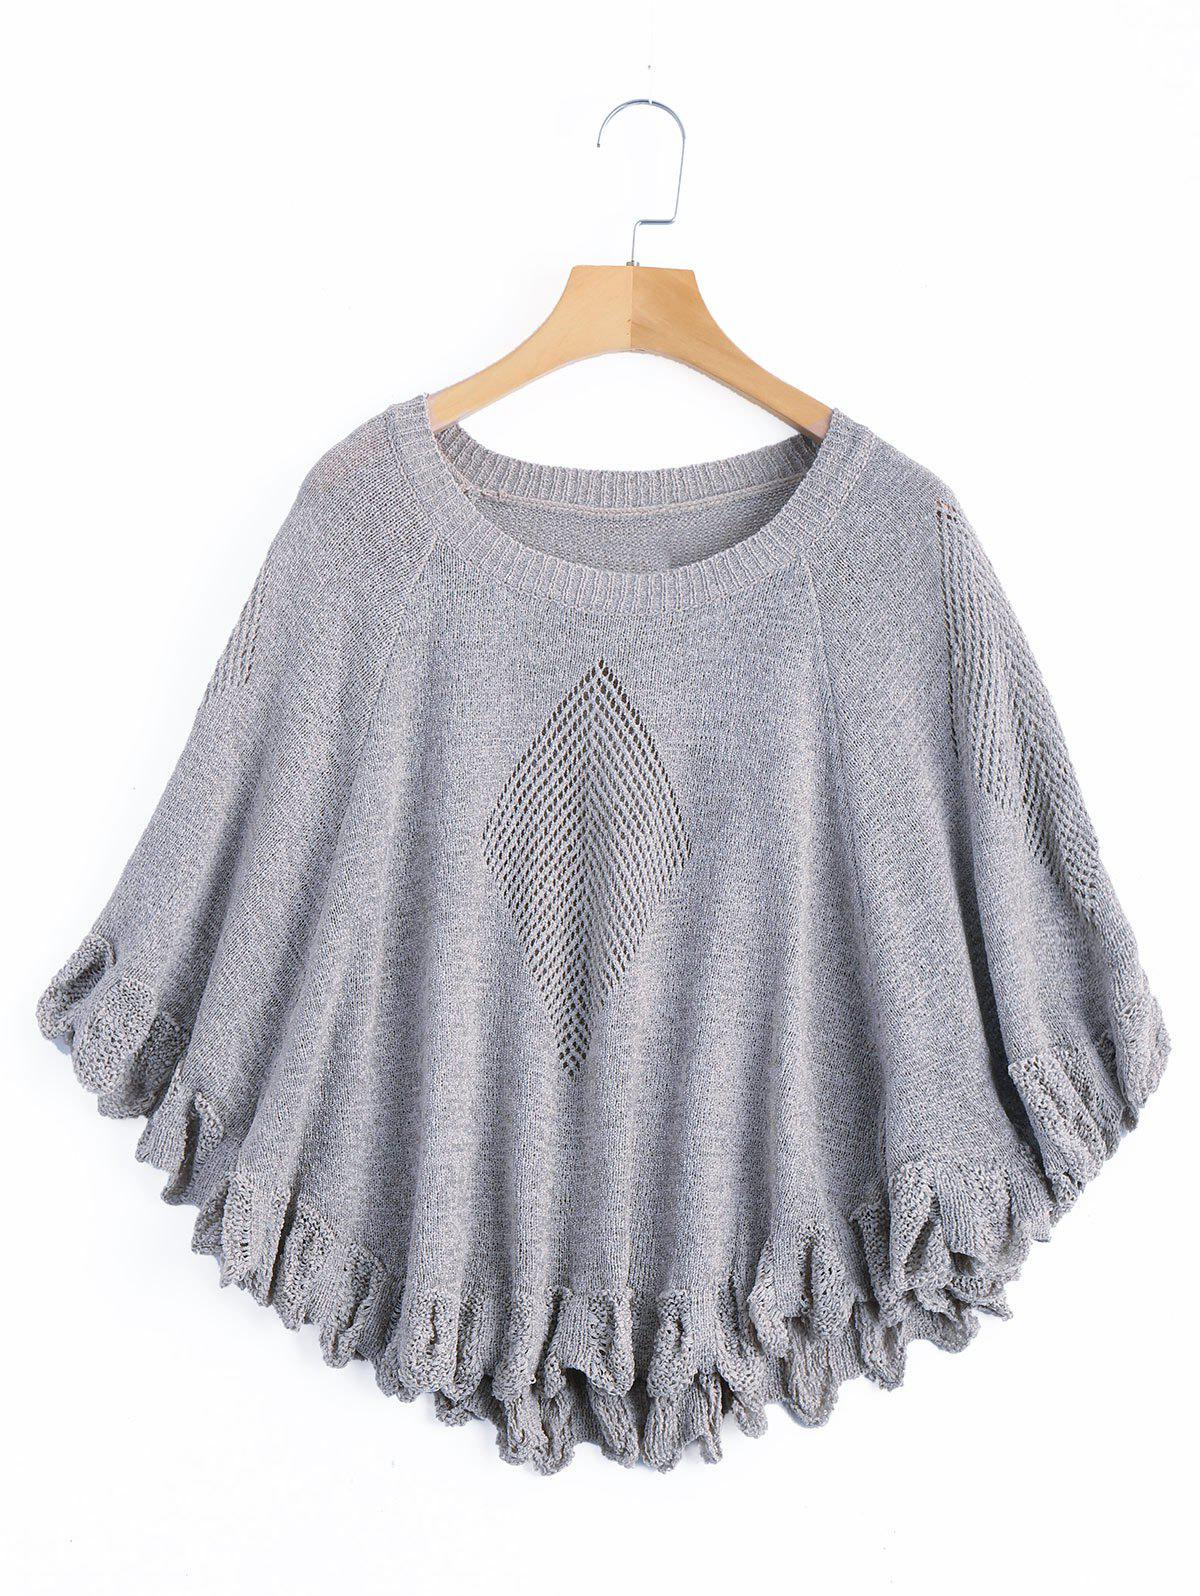 Hollow Out Knitted Top 225059901